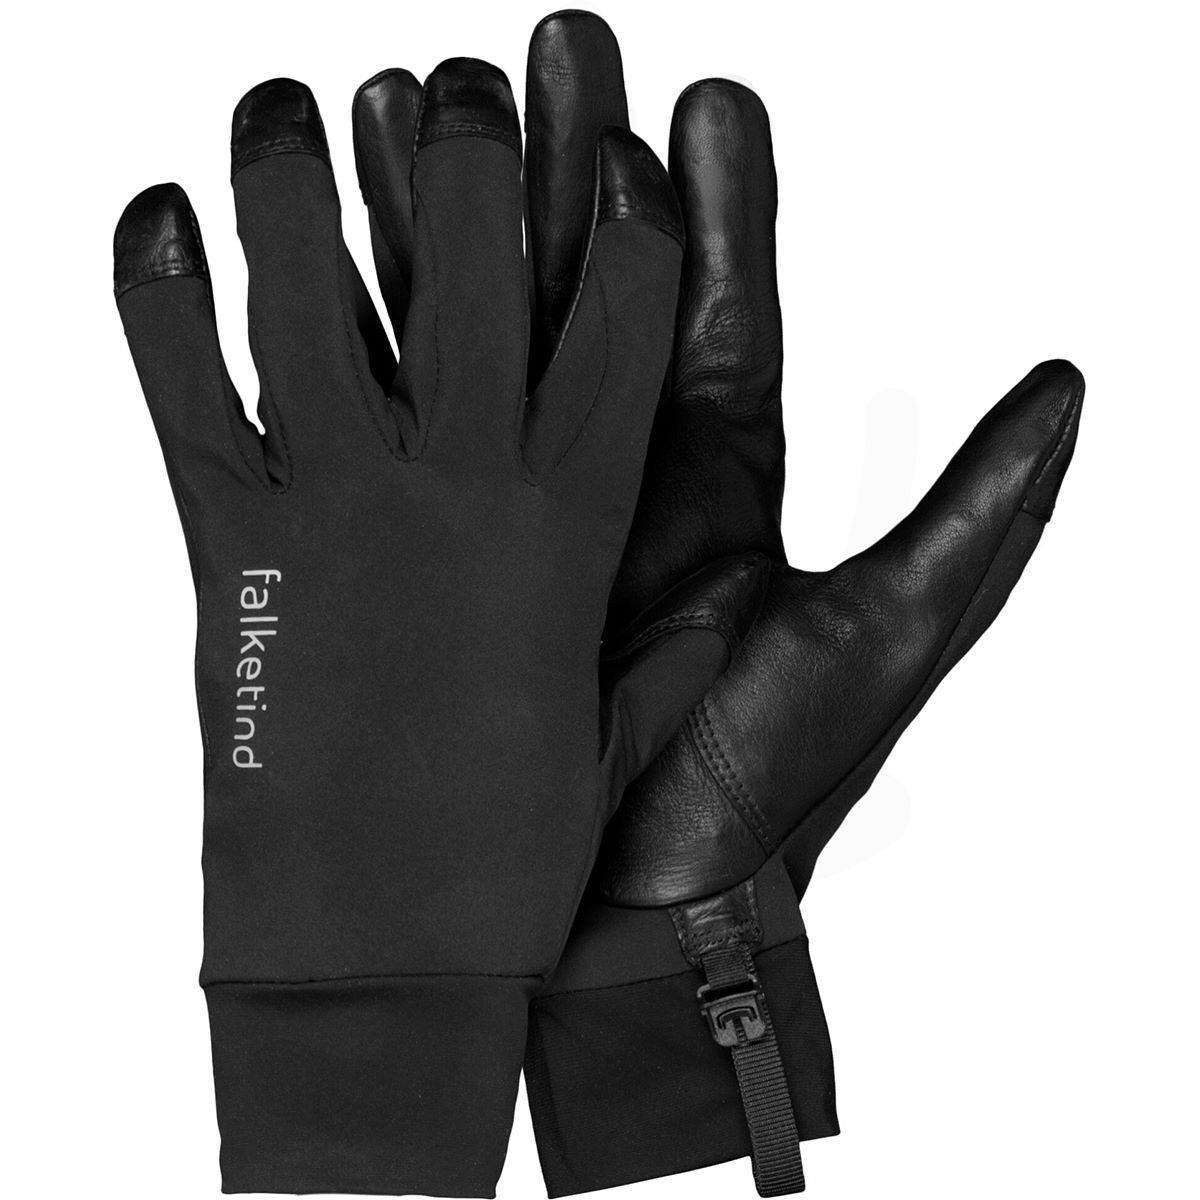 Norrøna Norrøna falketind Windstopper short Gloves   Gloves